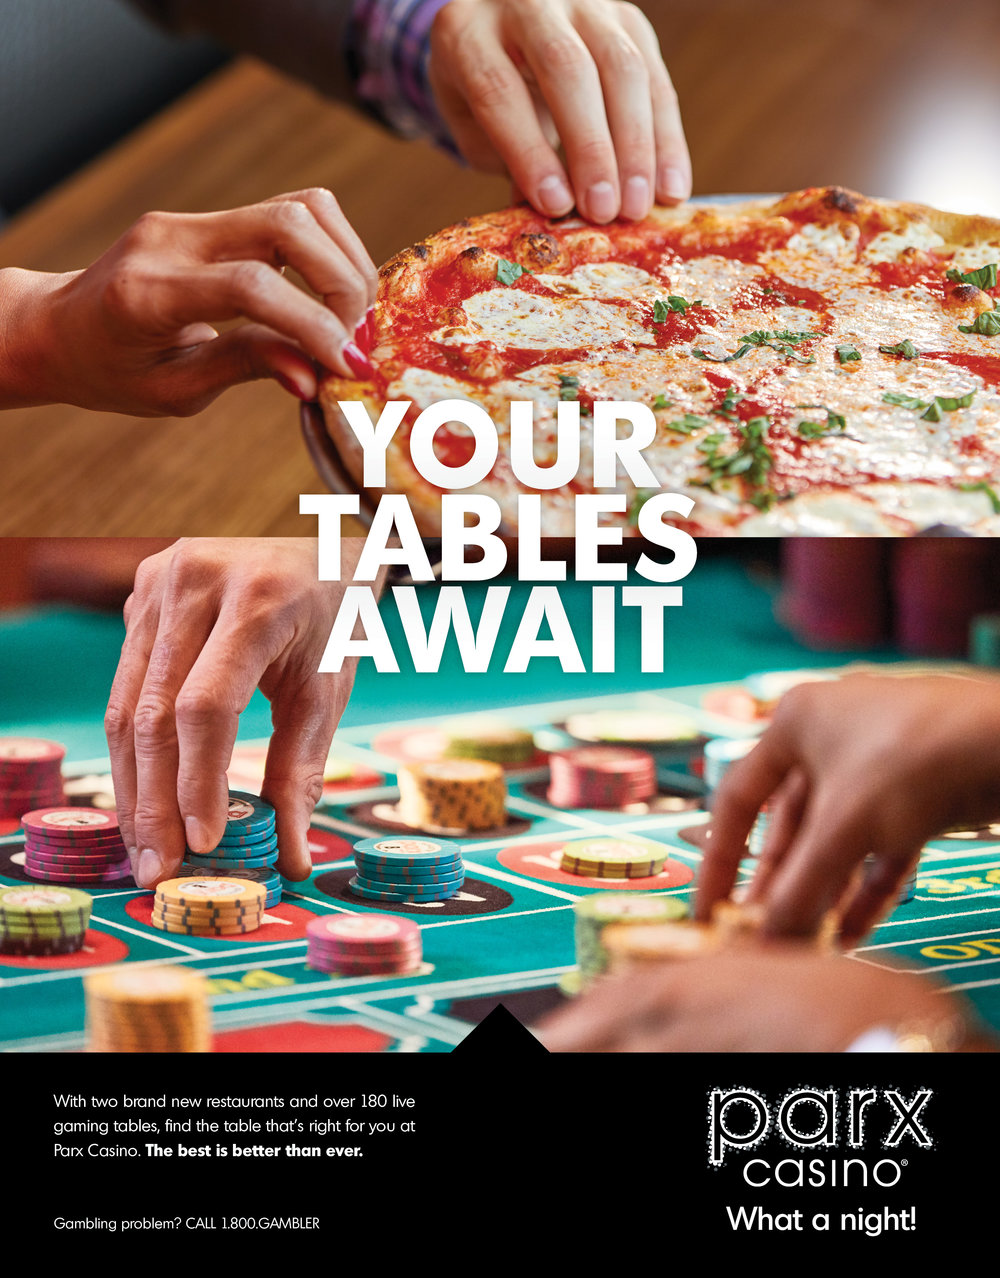 PARX0004_HomeAndTable_9x11.5_TablesAwait.jpg